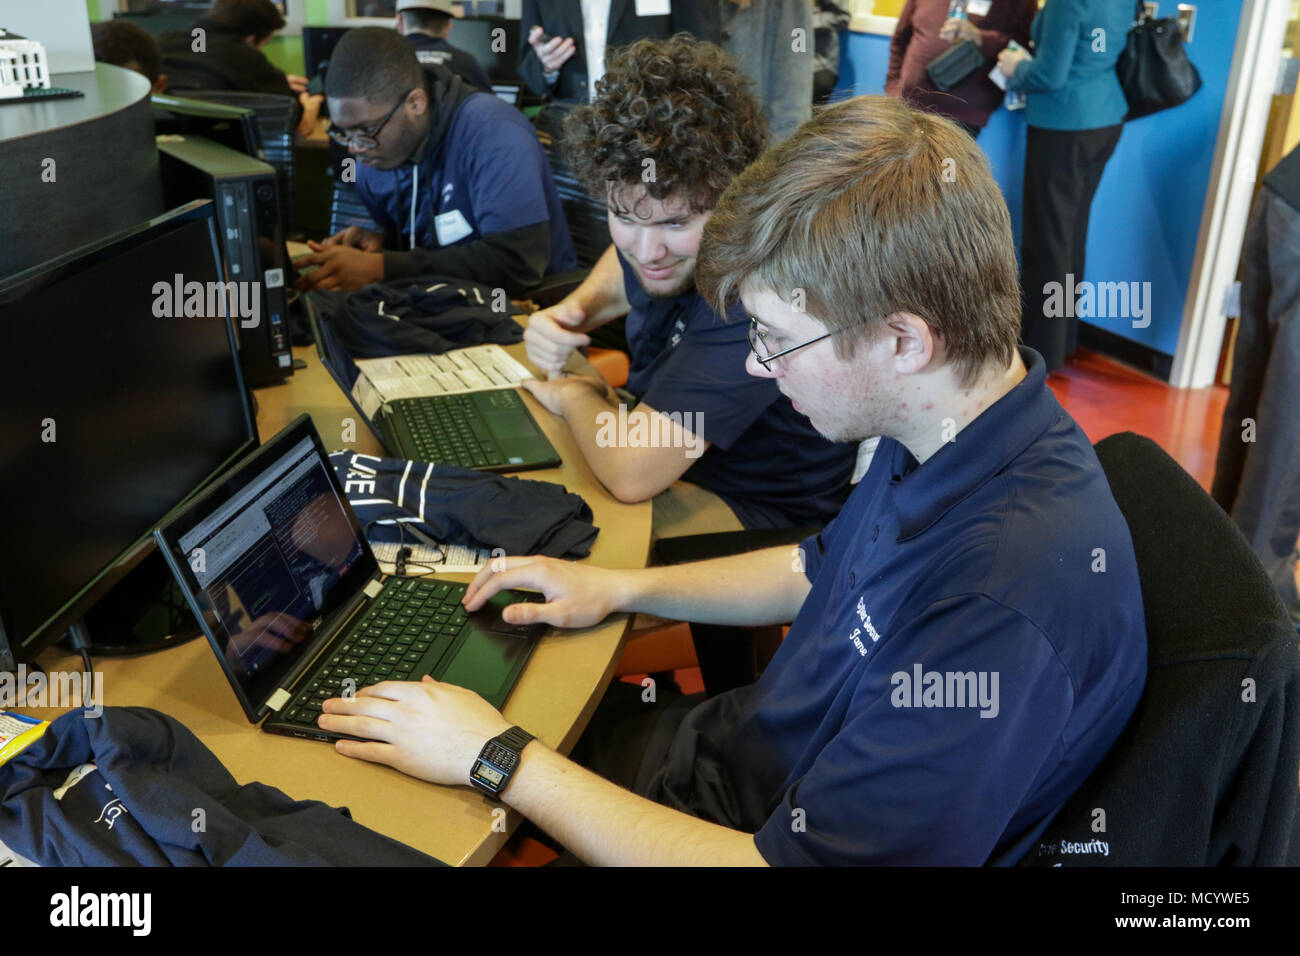 Central Ohio students analyze computer system vulnerabilities during a cyber capture the flag event March 6, 2018, at Westerville North High School in Westerville, Ohio. Sponsored by the Ohio Cyber Collaboration Committee, the event tested students on various cyber security skills to prepare them for potential future careers in technology. (Ohio National Guard photo by Staff Sgt. Michael Carden) - Stock Image